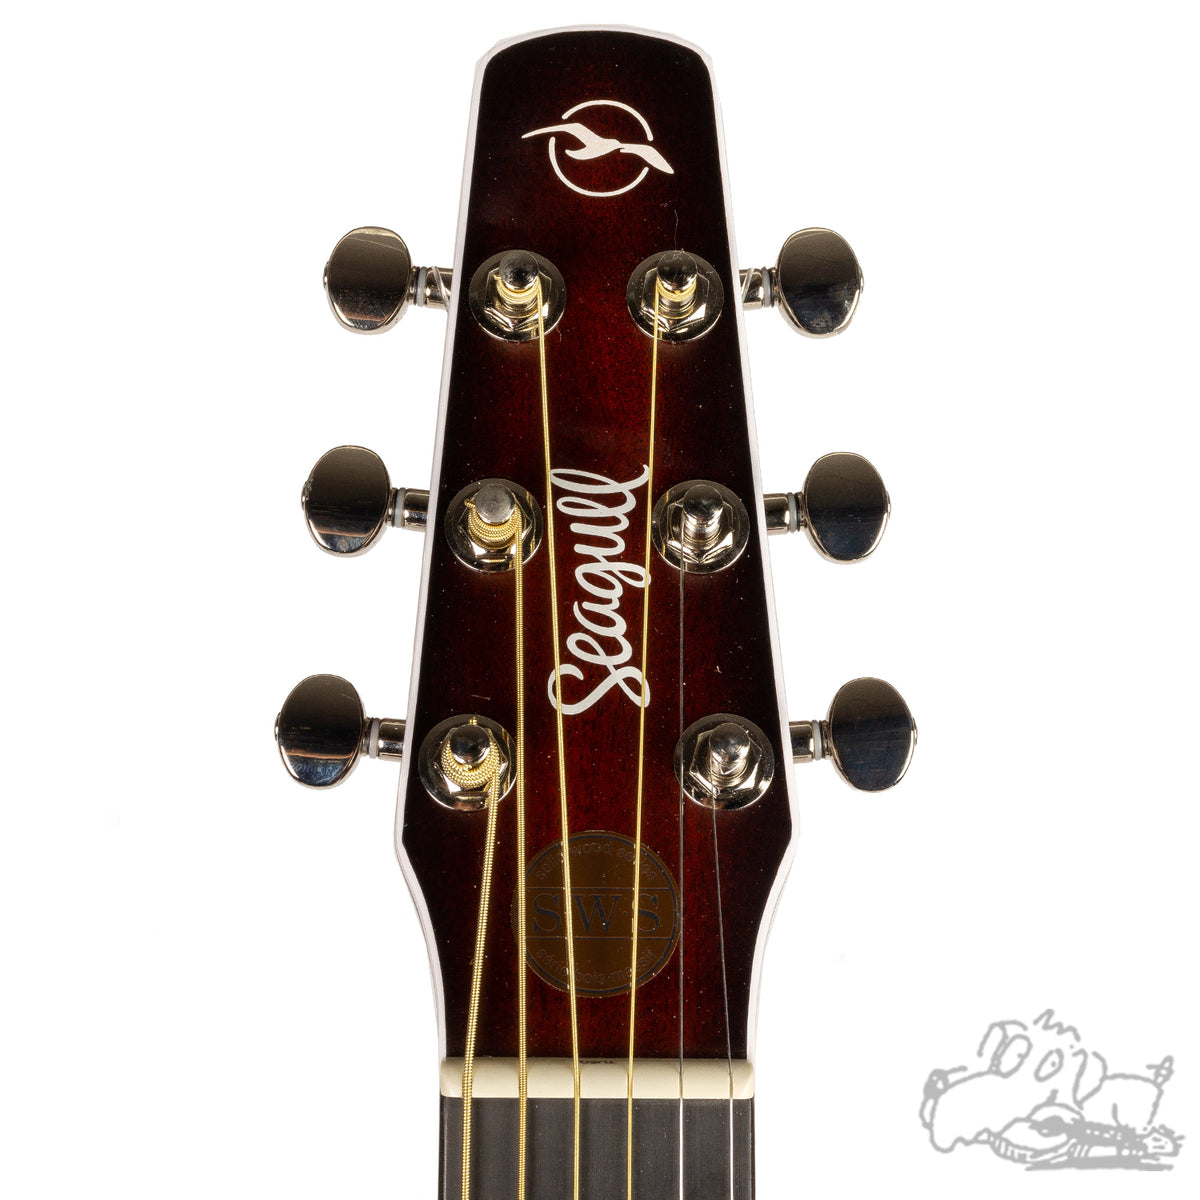 Seagull SWS Maritime Dreadnought - Used